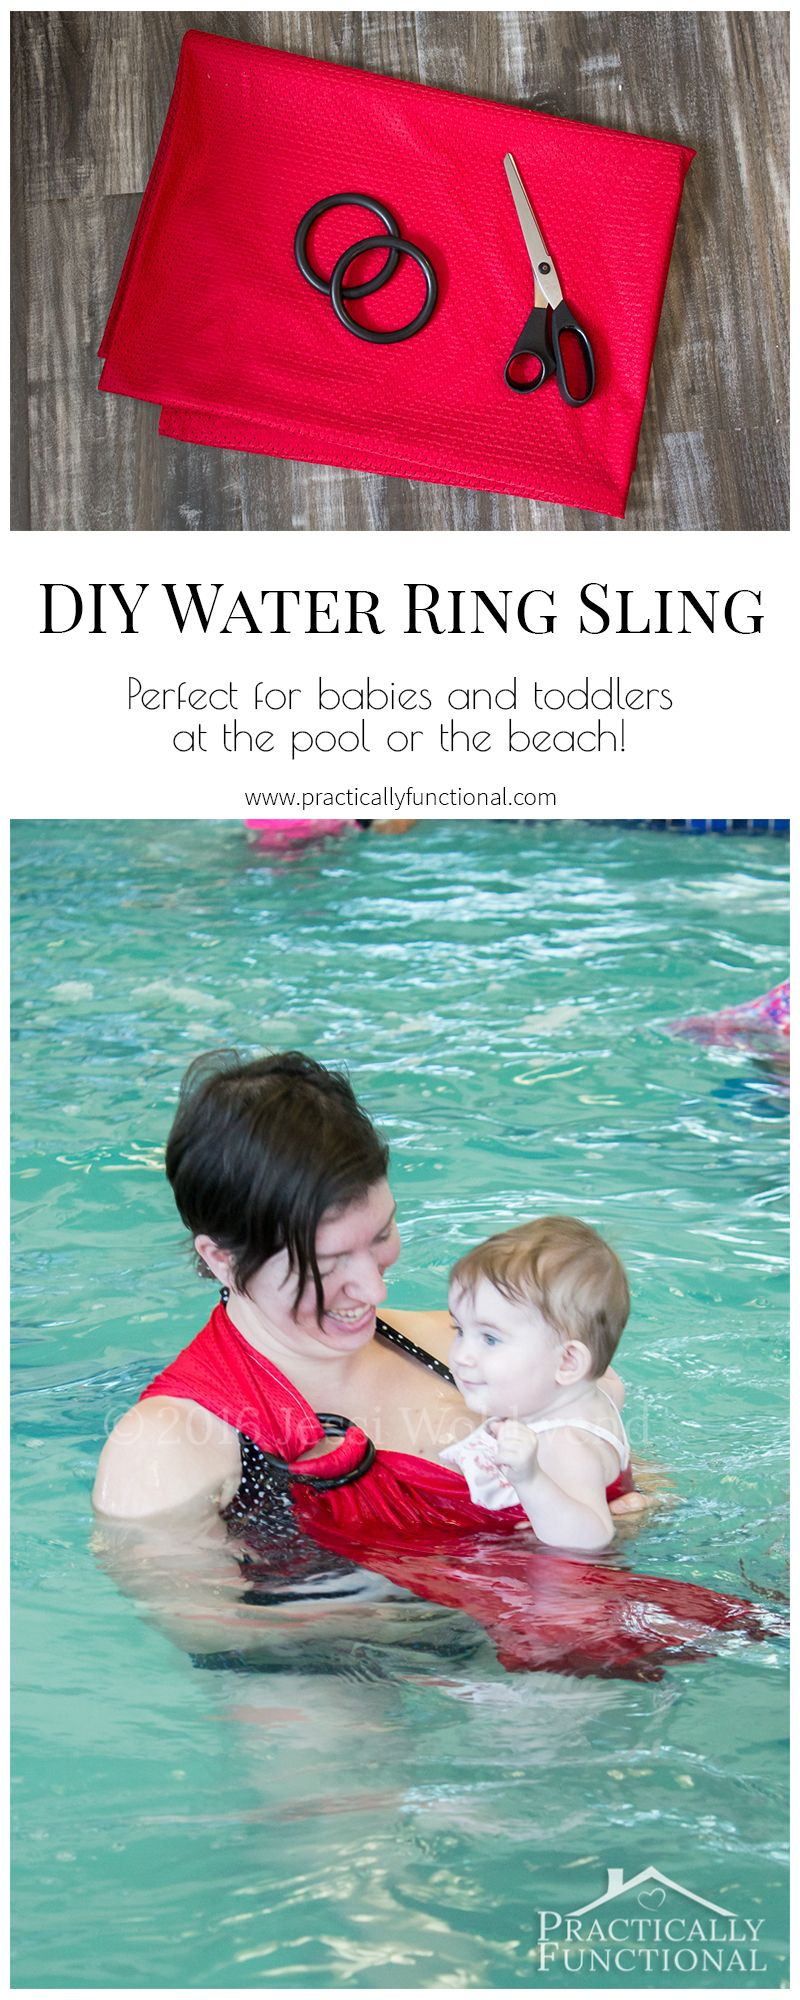 fb2e34e31e5 Love this DIY water ring sling! So quick and easy to make